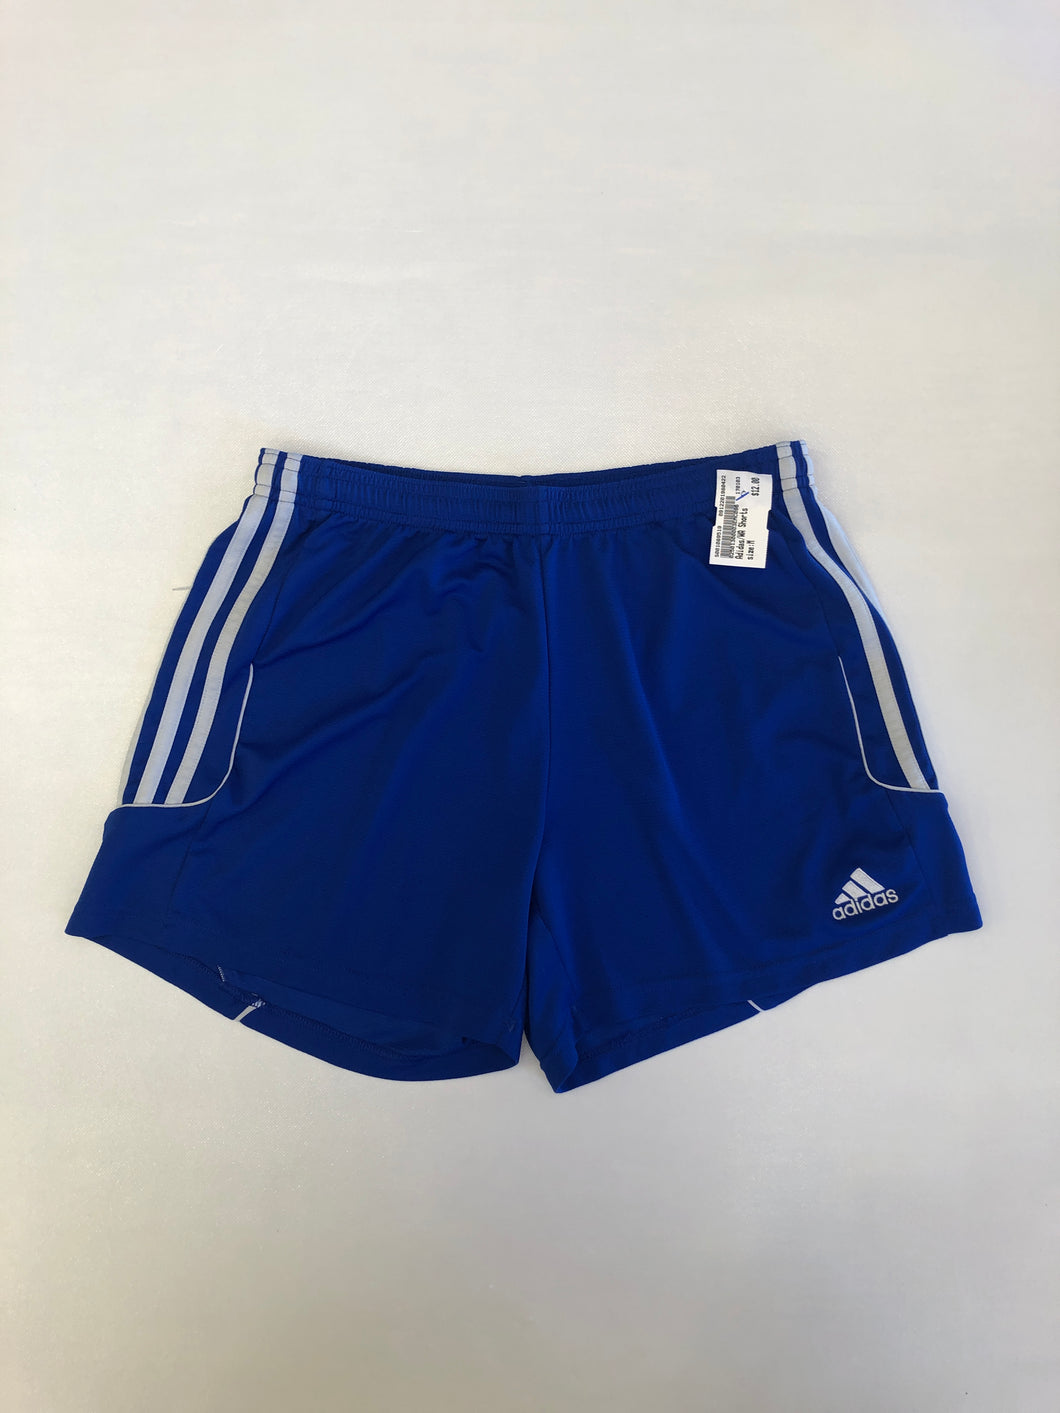 Adidas Womens Athletic Shorts Size Medium